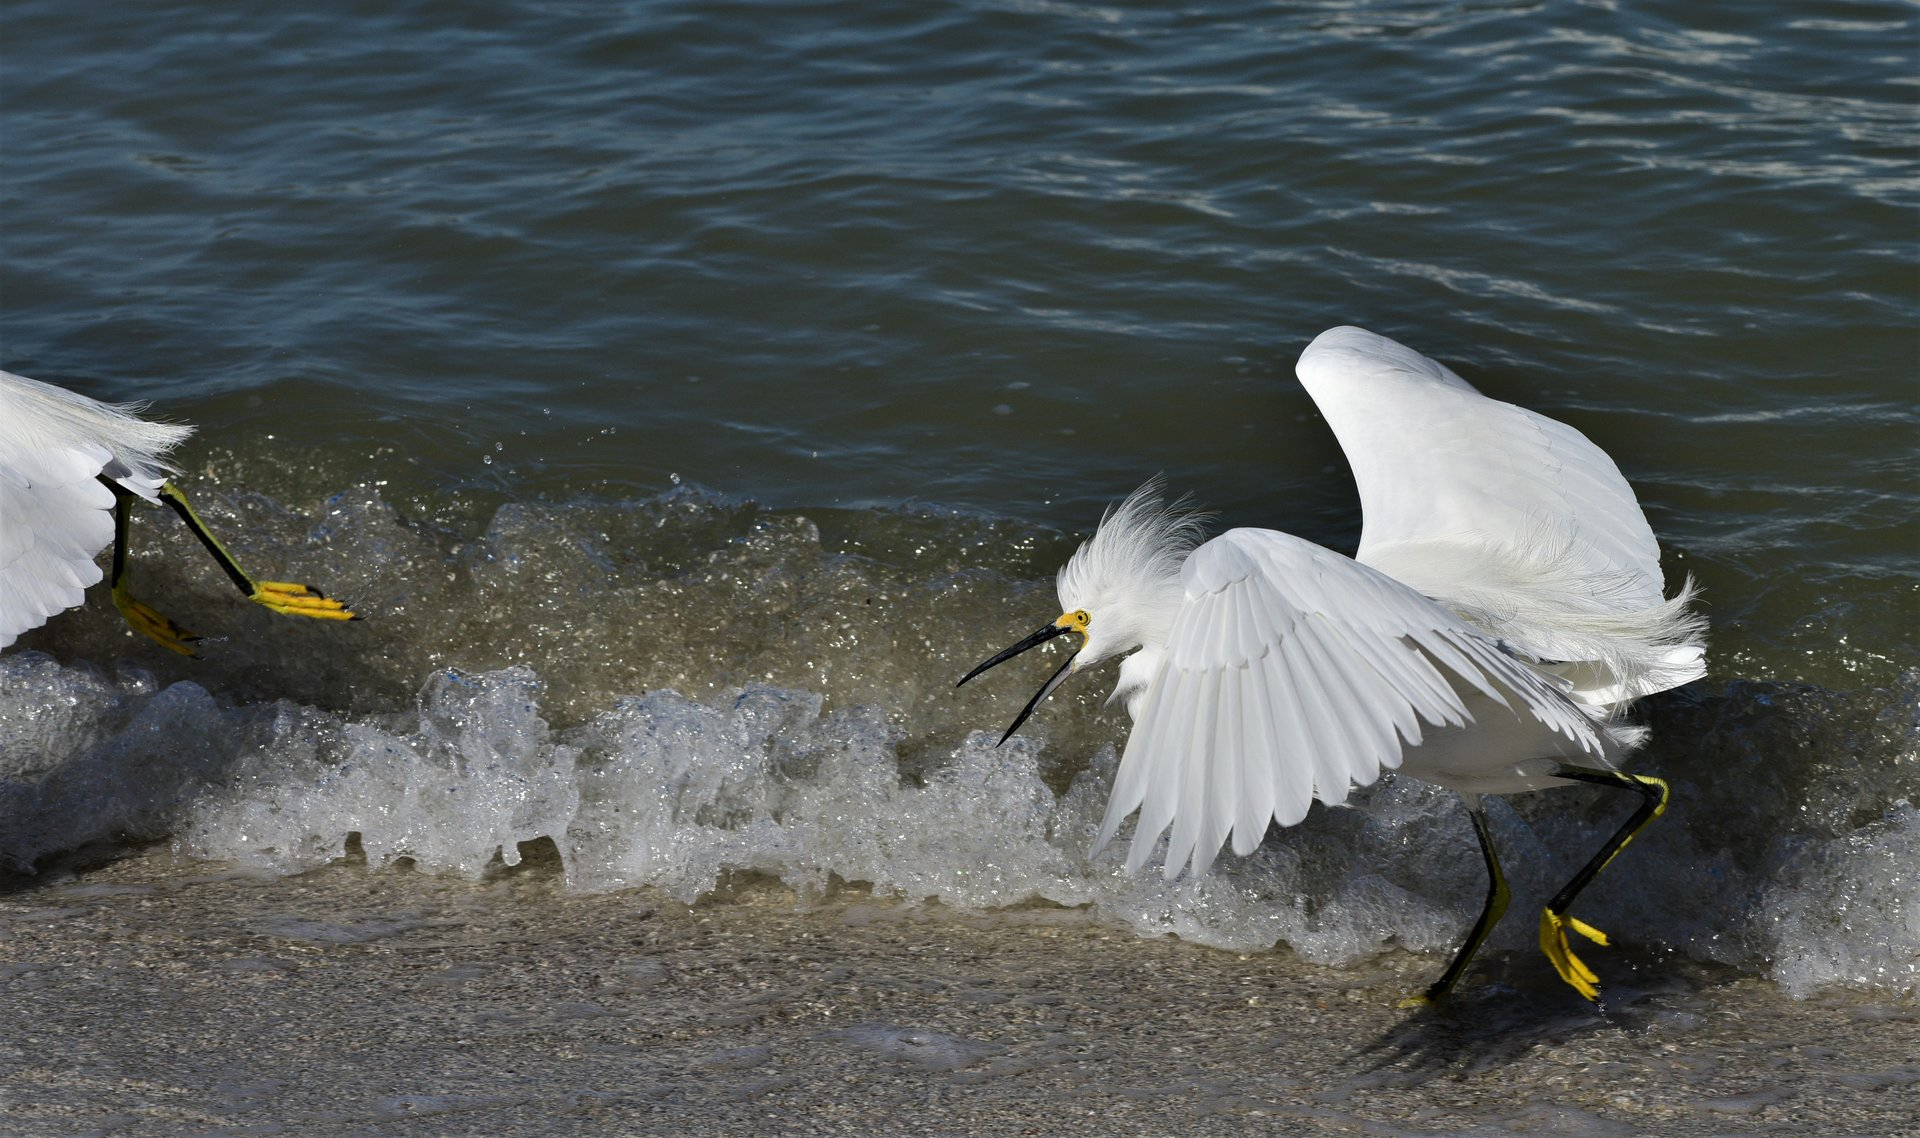 chasing others | Author mirs | PHOTO FORUM